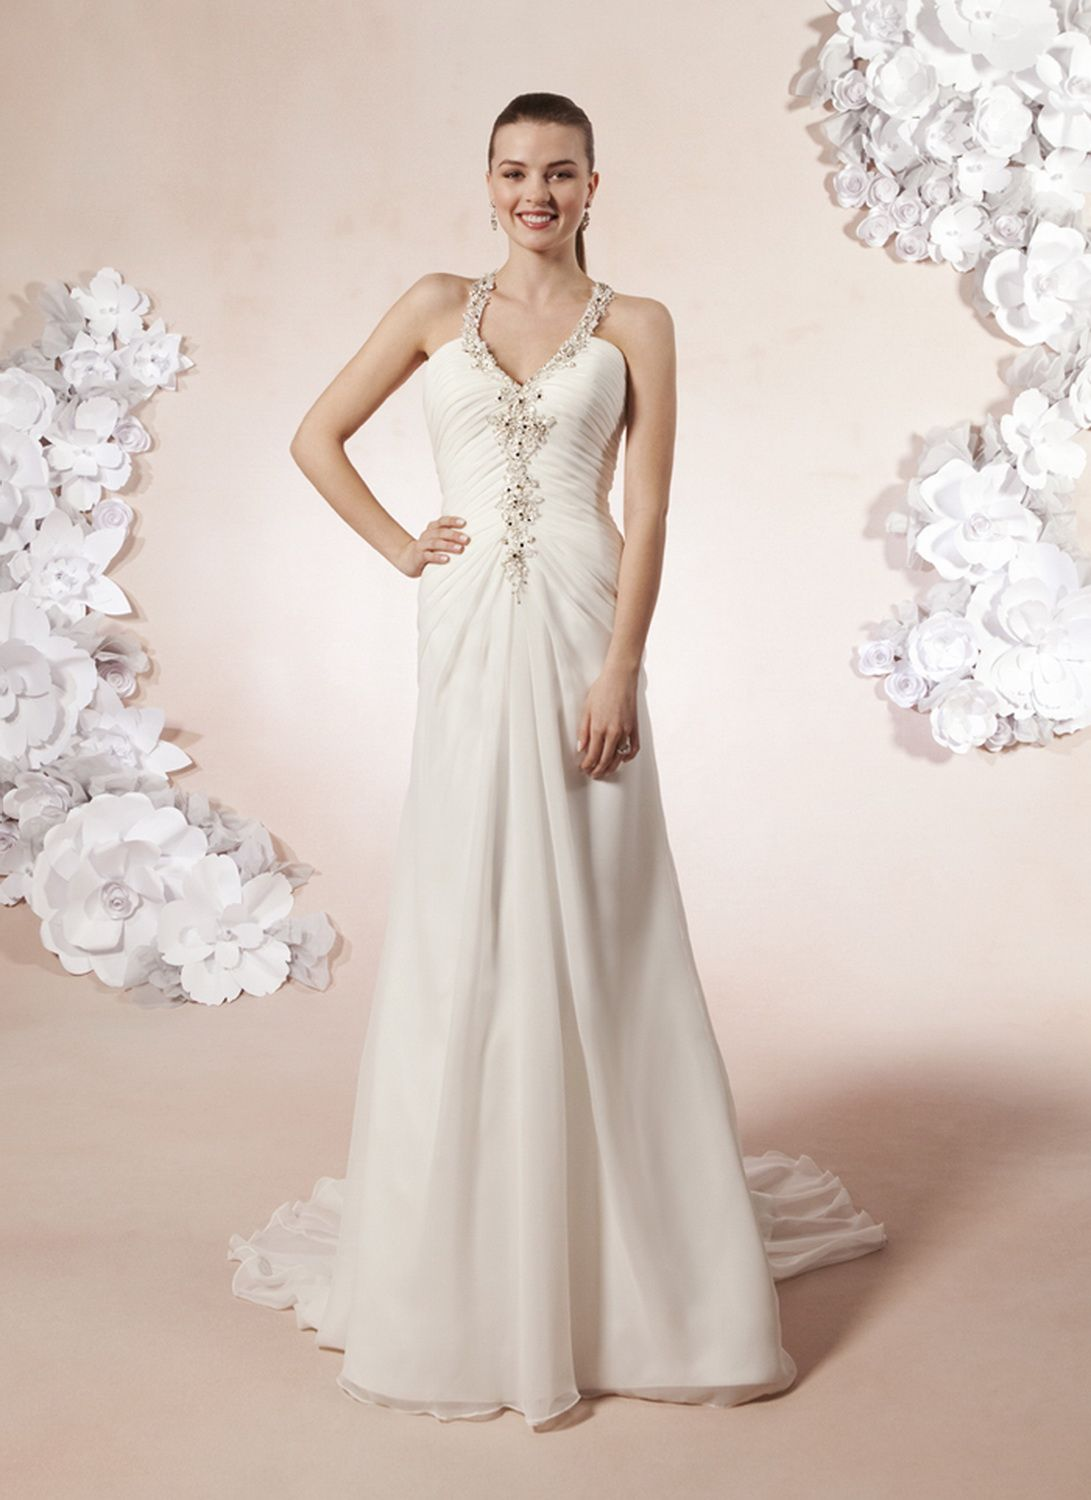 Sweetheart bridal gown sweetheart from laboutiquedesbride